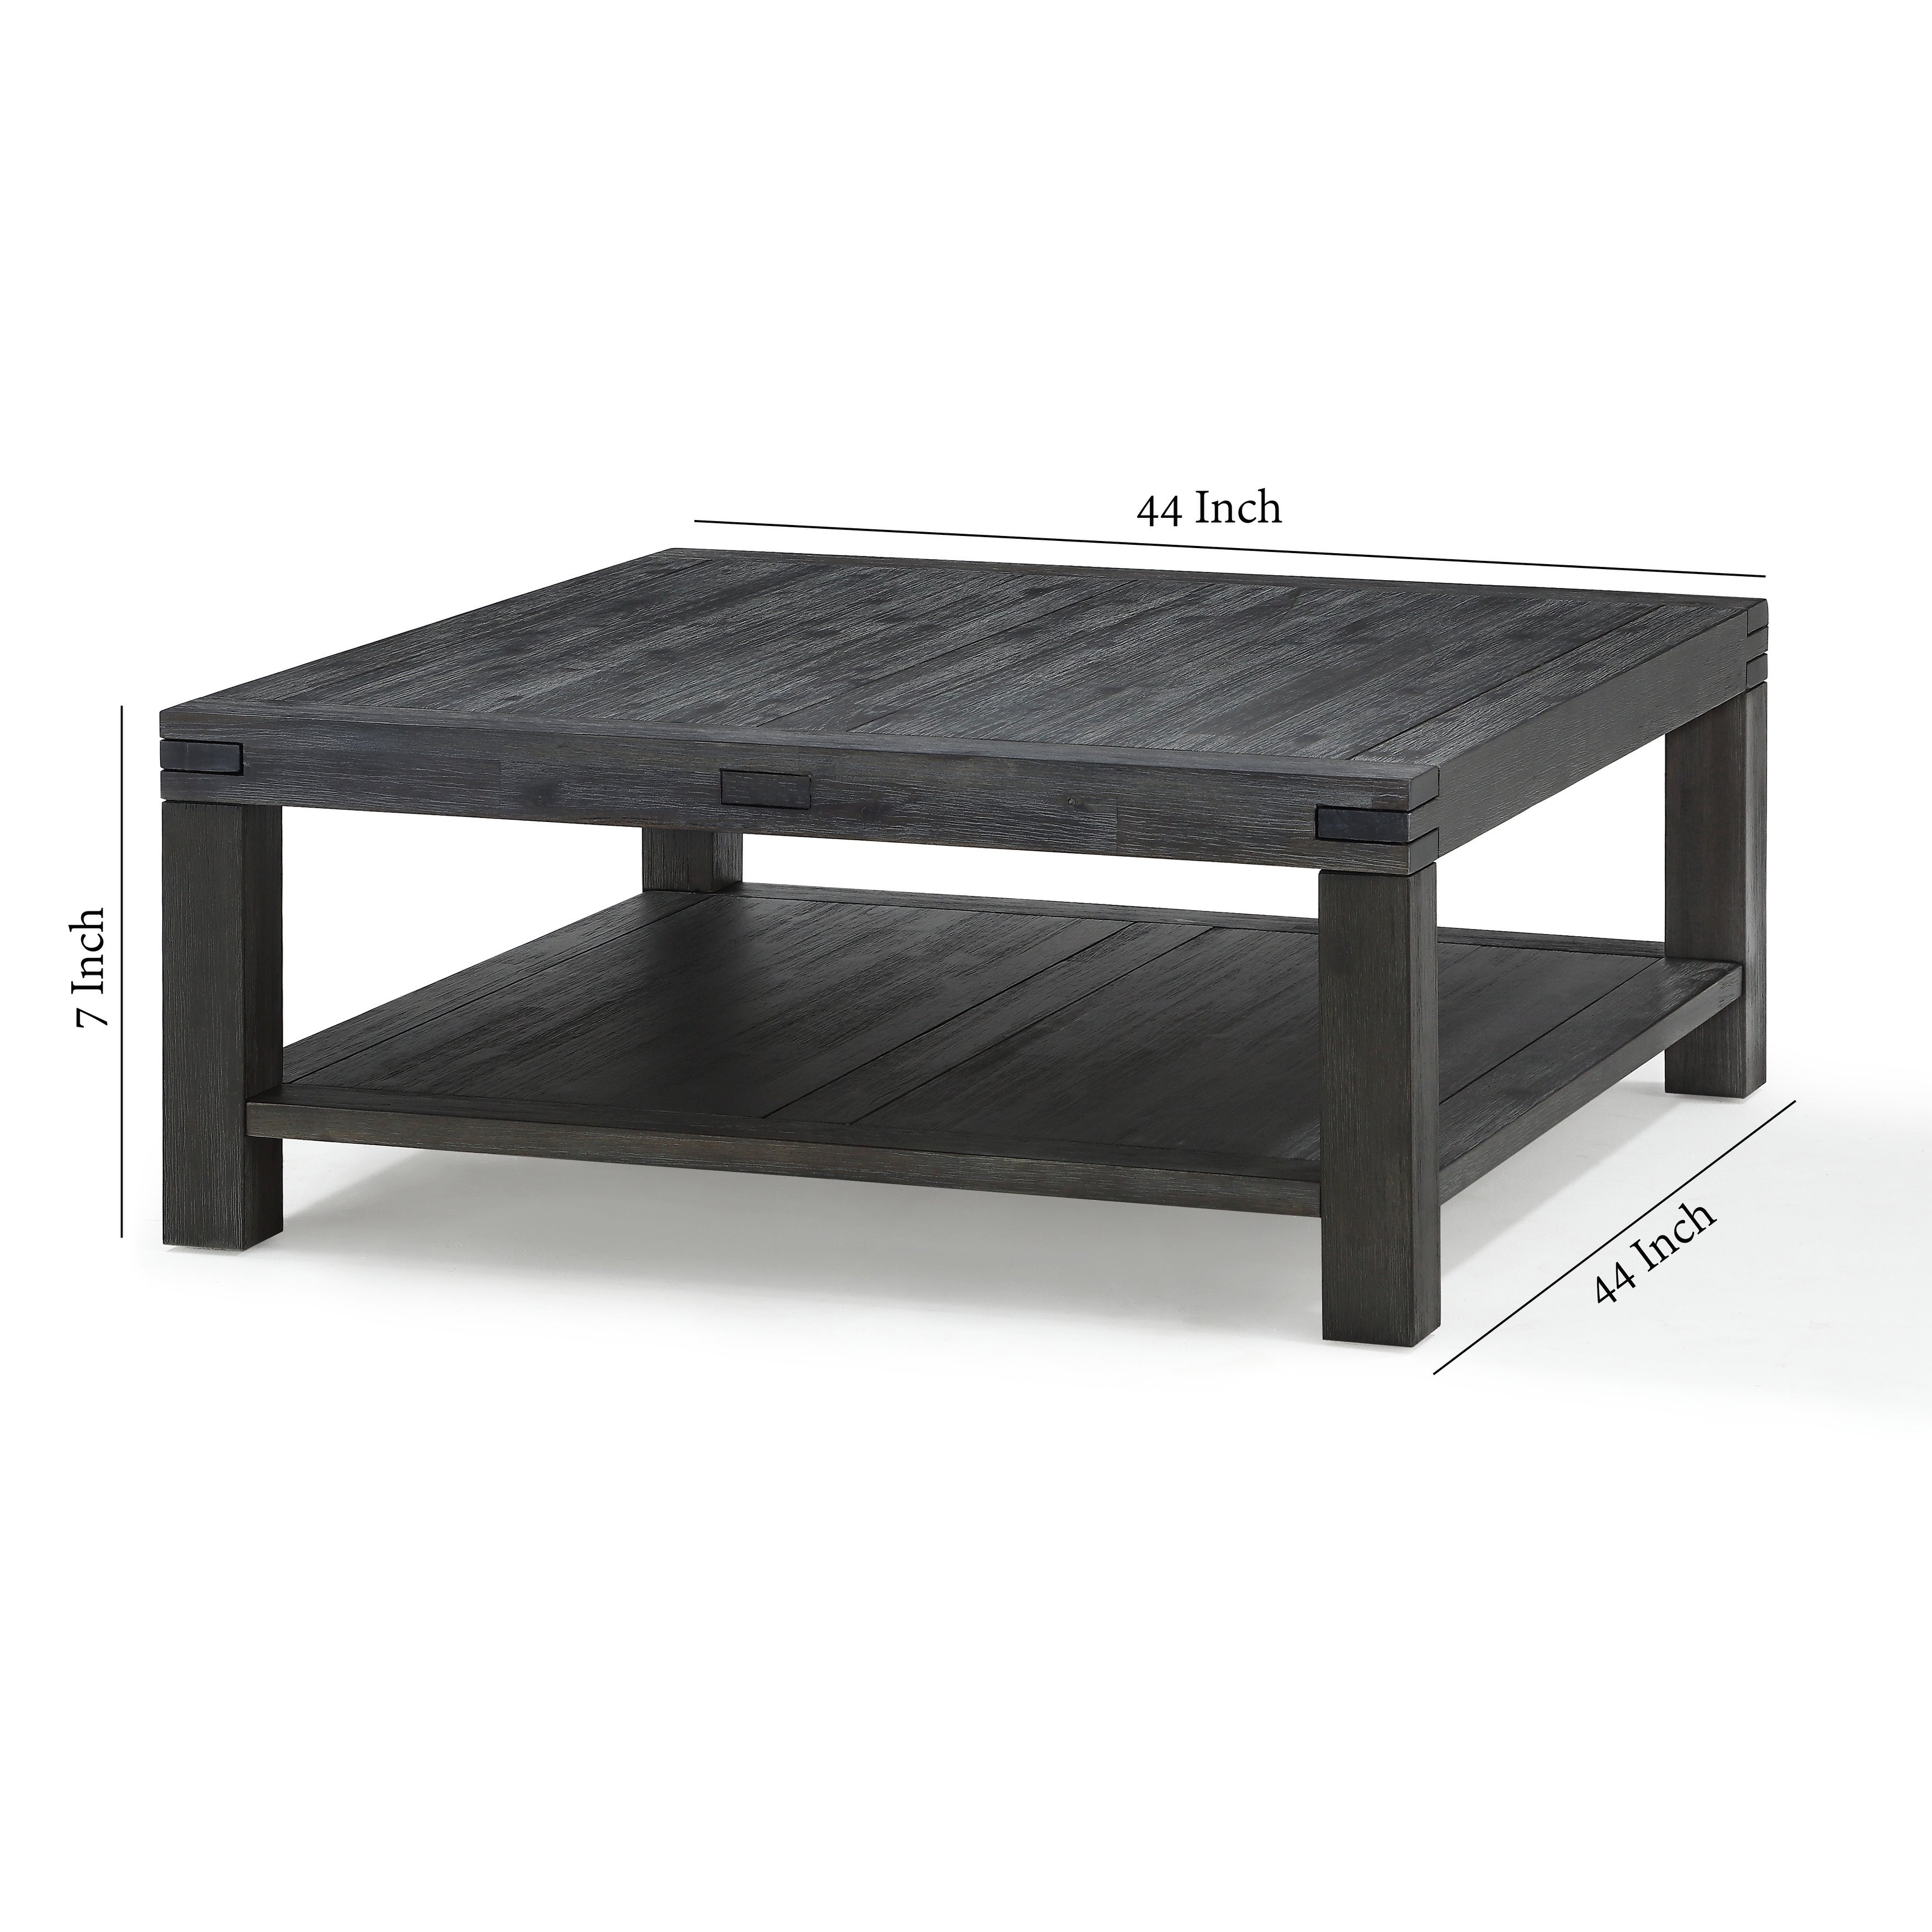 Square Coffee Table With Block